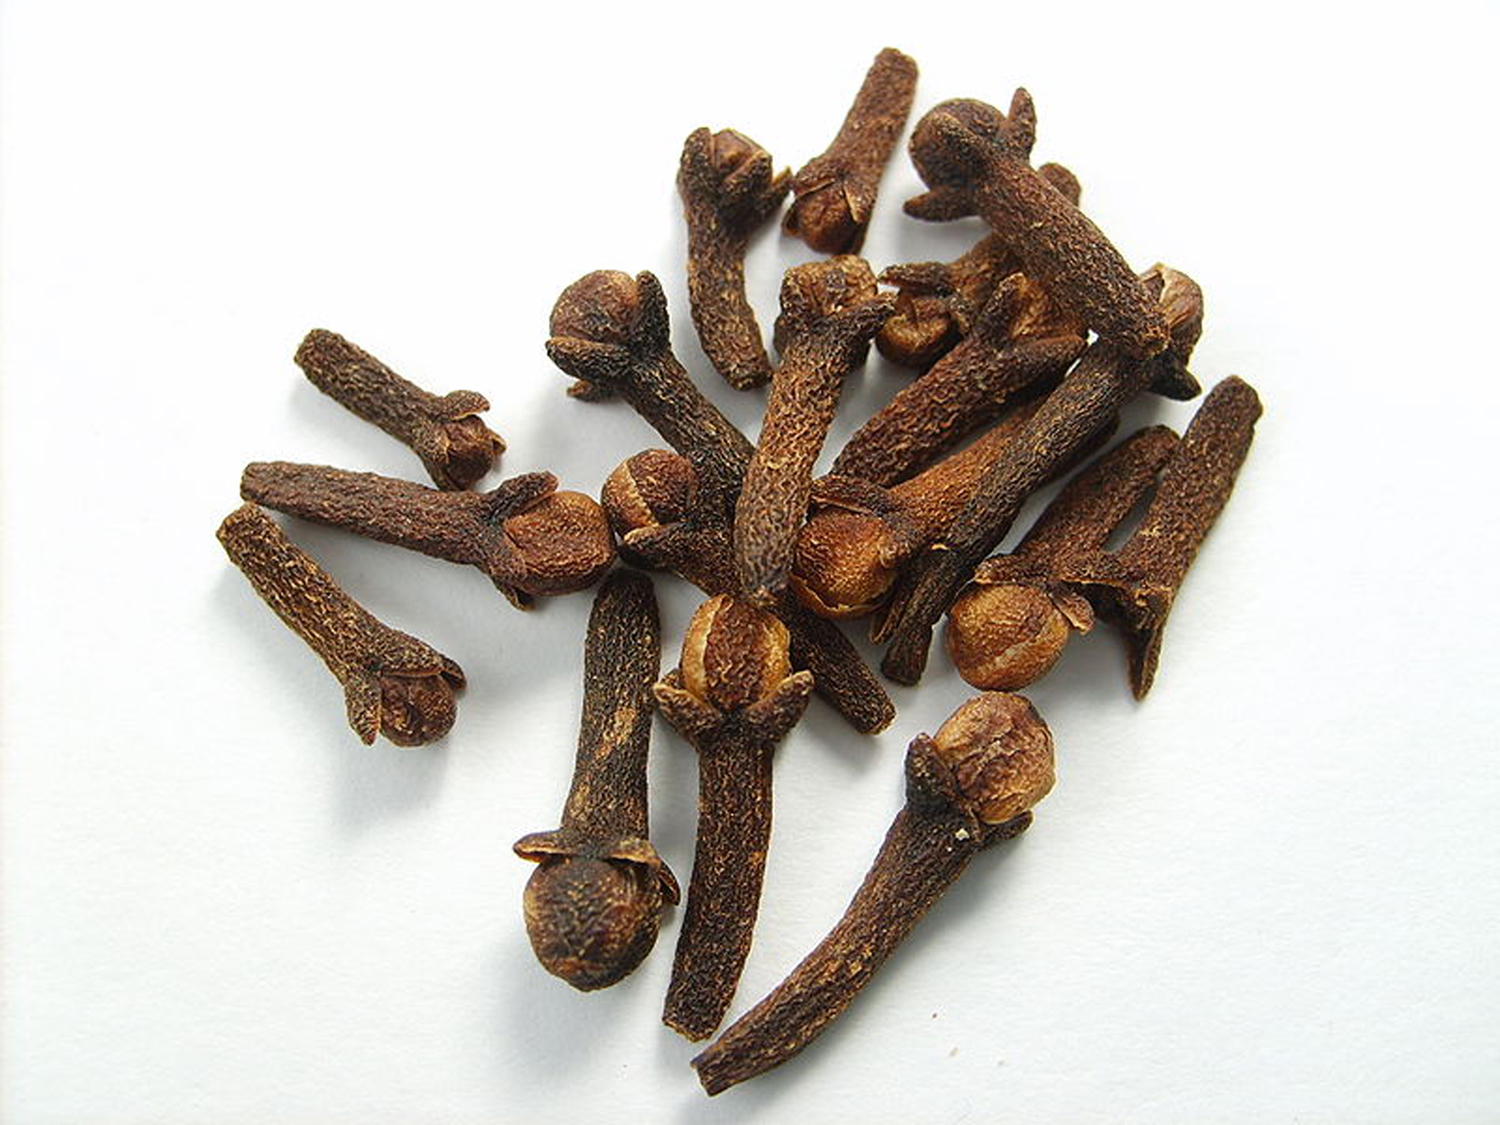 Cloves in french